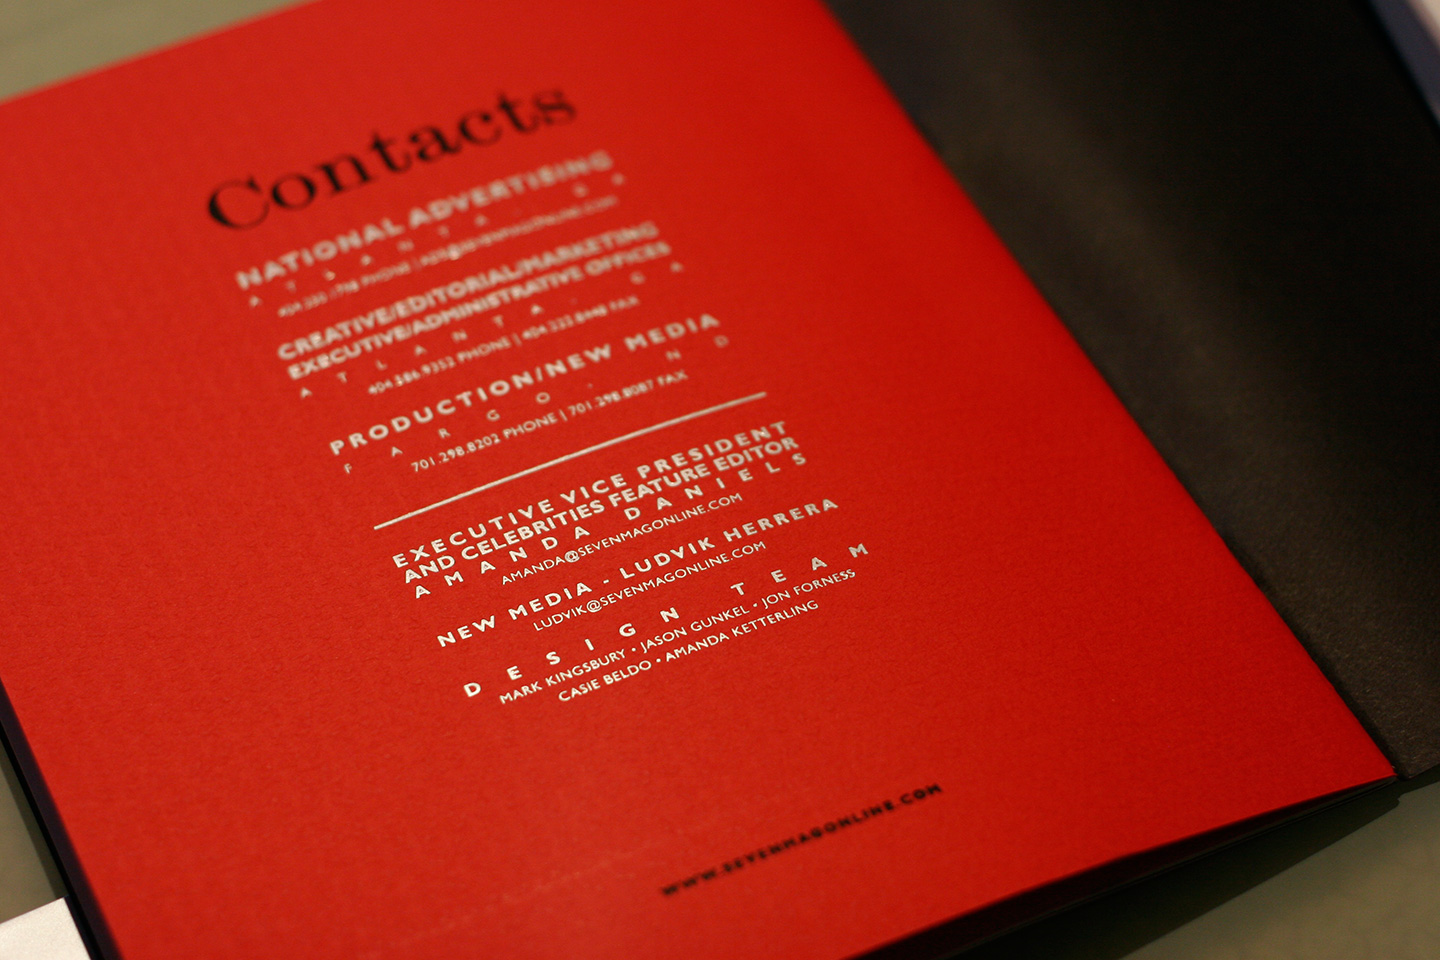 Red page of a magazine with black and white text